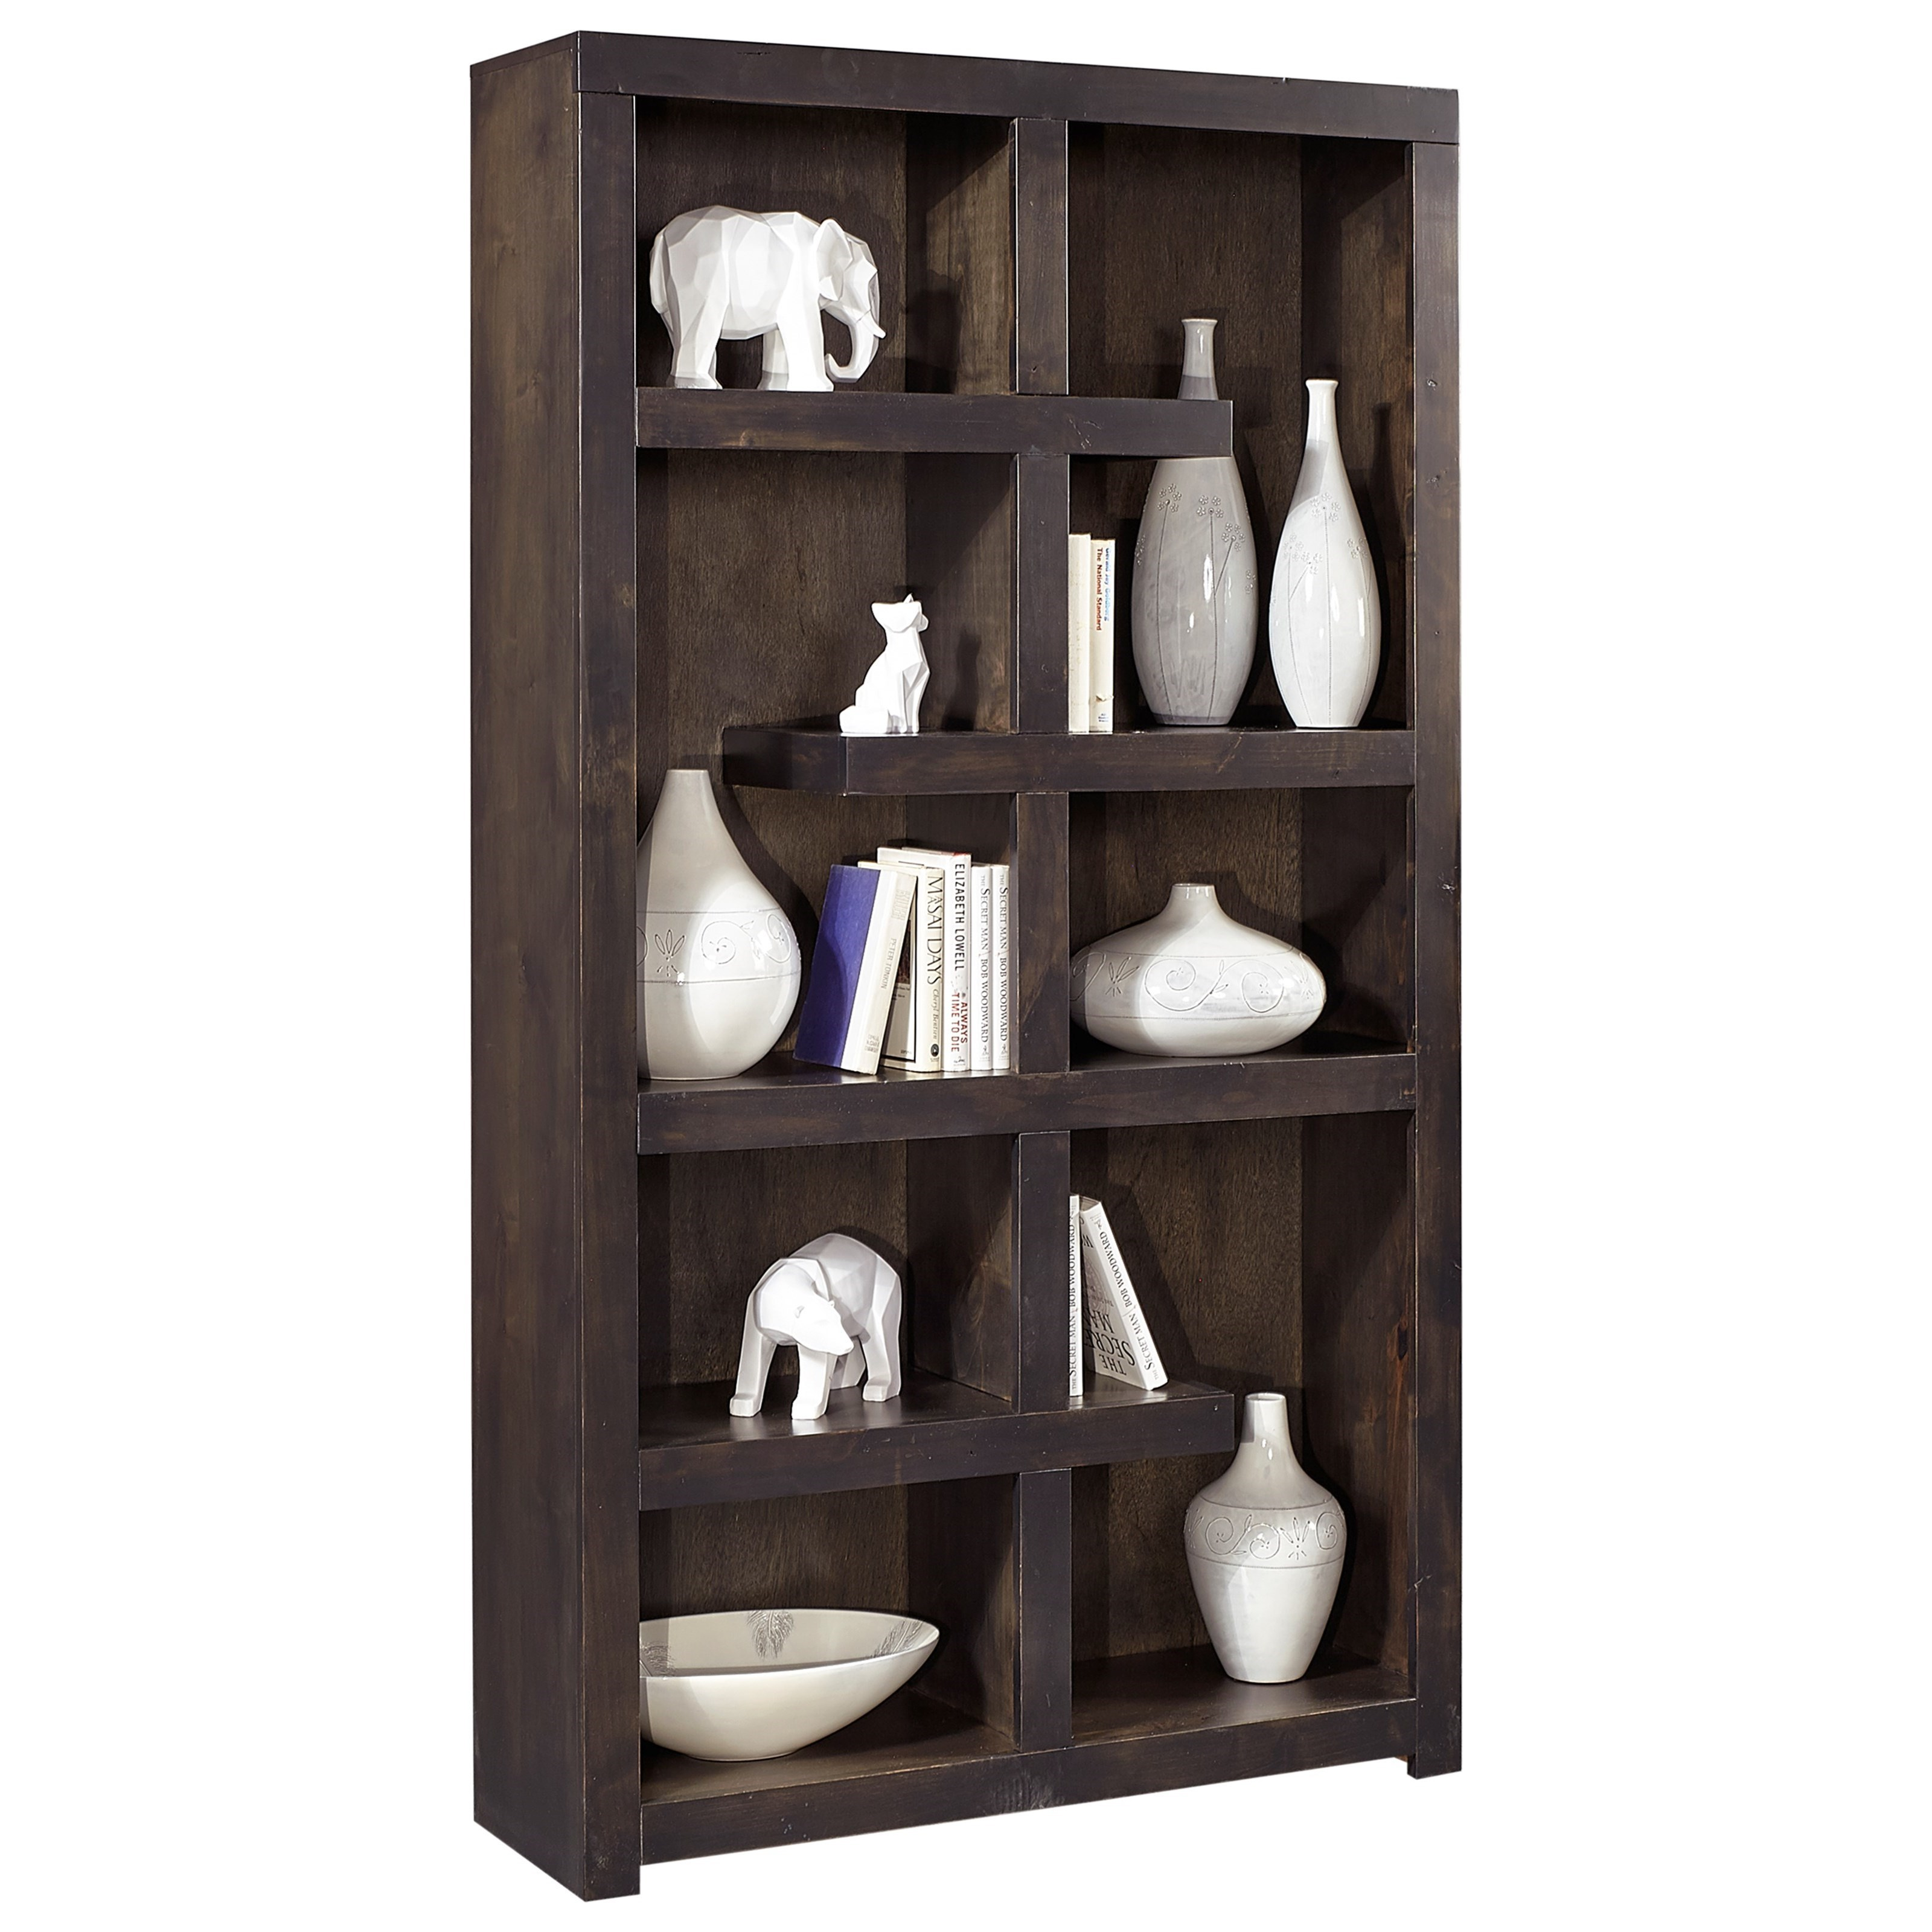 "Avery Loft 76"" Open Book Case by Aspenhome at Baer's Furniture"